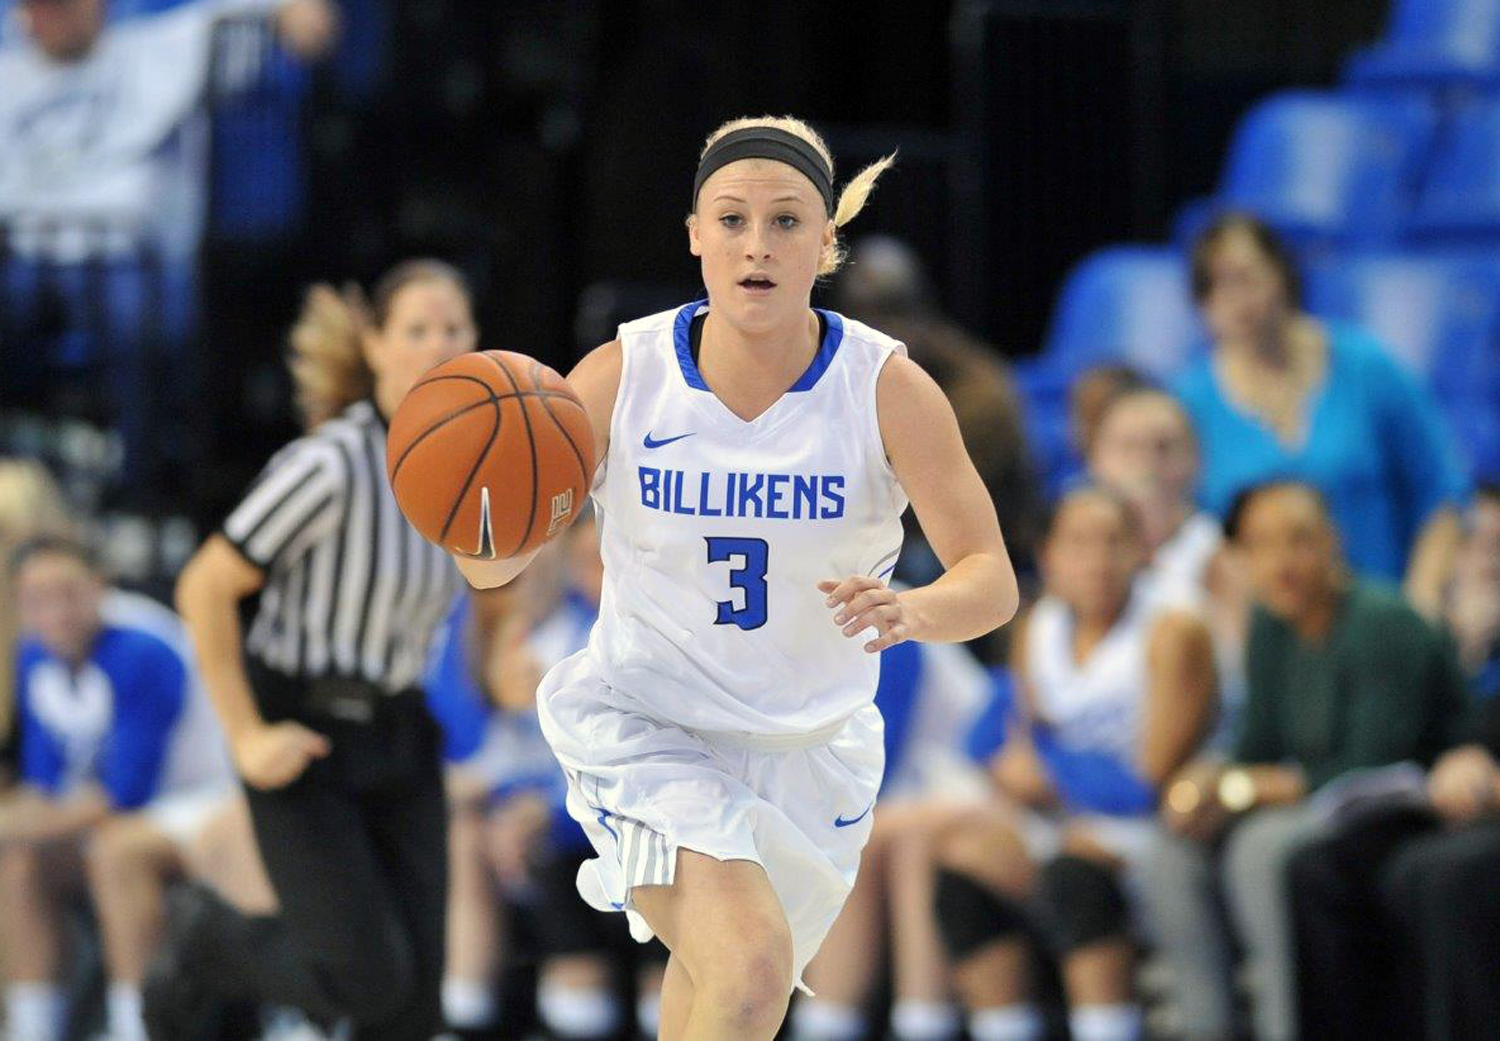 This recent undated photo provided by Saint Louis University shows Saint Louis basketball player Jackie Kemph. It's been a season to savor for Saint Louis. The Billikens earned a share for their first ever conference title and are the No. 2 seed in this w